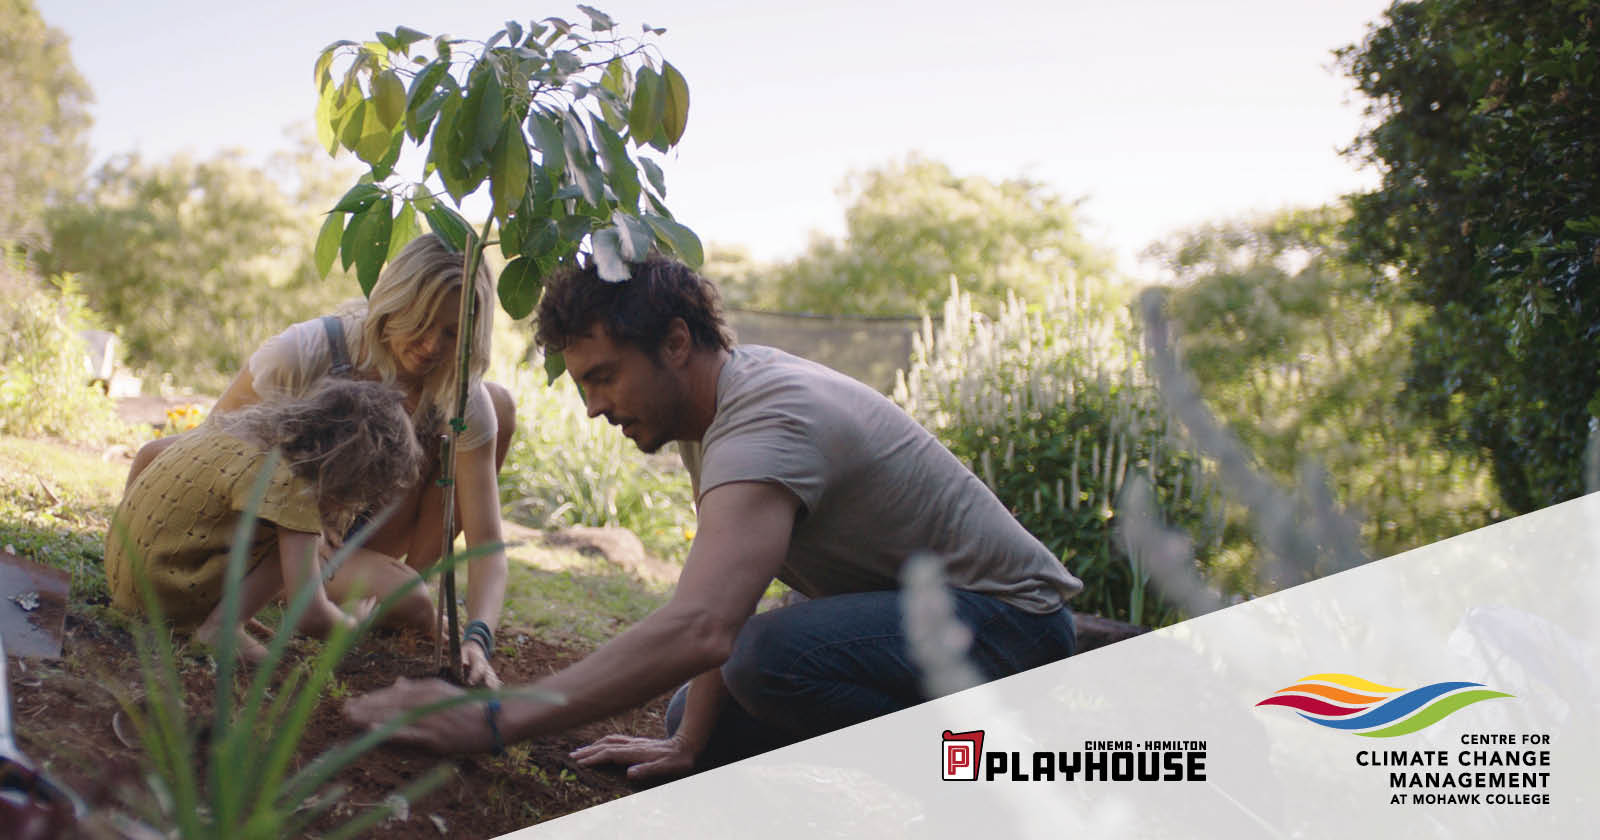 2040 Film advertisement planting trees with Playhouse and Centre for Climate Change Management logos